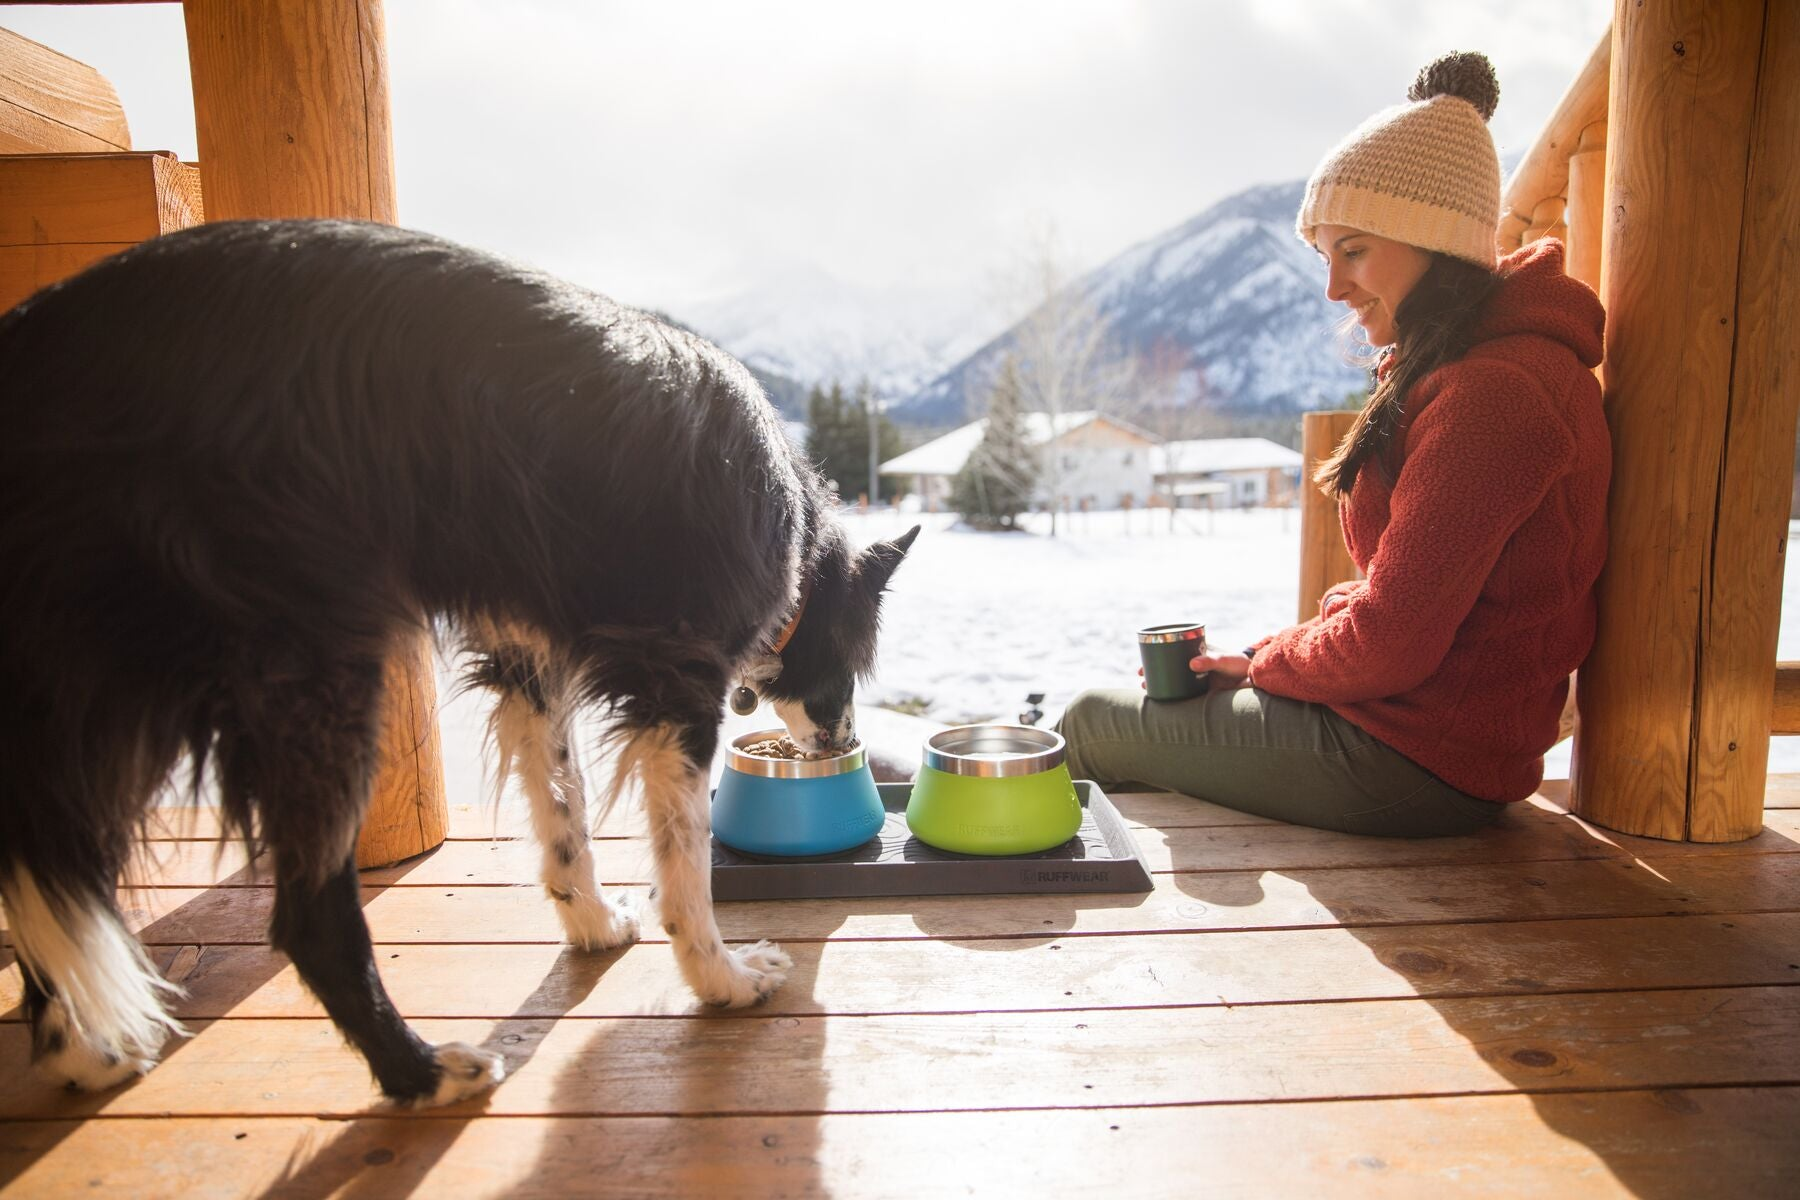 Dog eats out of basecamp bowls on the porch of a cabin.